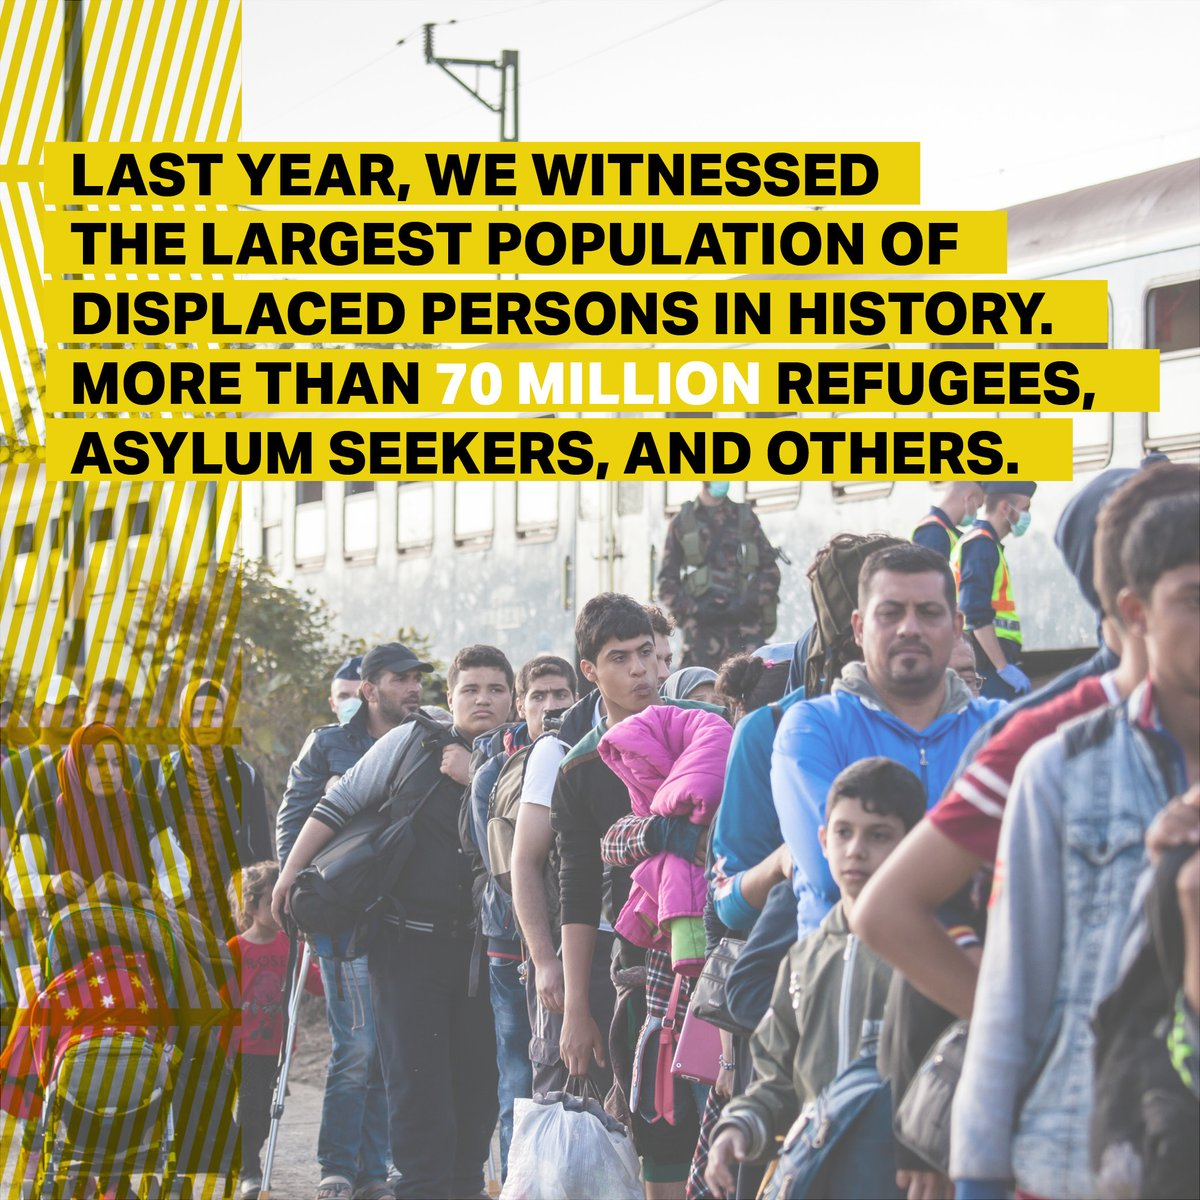 We know – the statistics are shocking. That's why we joined #70million, a campaign powered by @OLAMtogether. We call on JLM members to learn, donate, advocate or volunteer to stand in solidarity with those displaced around the world. Join the call 👉 70million.org